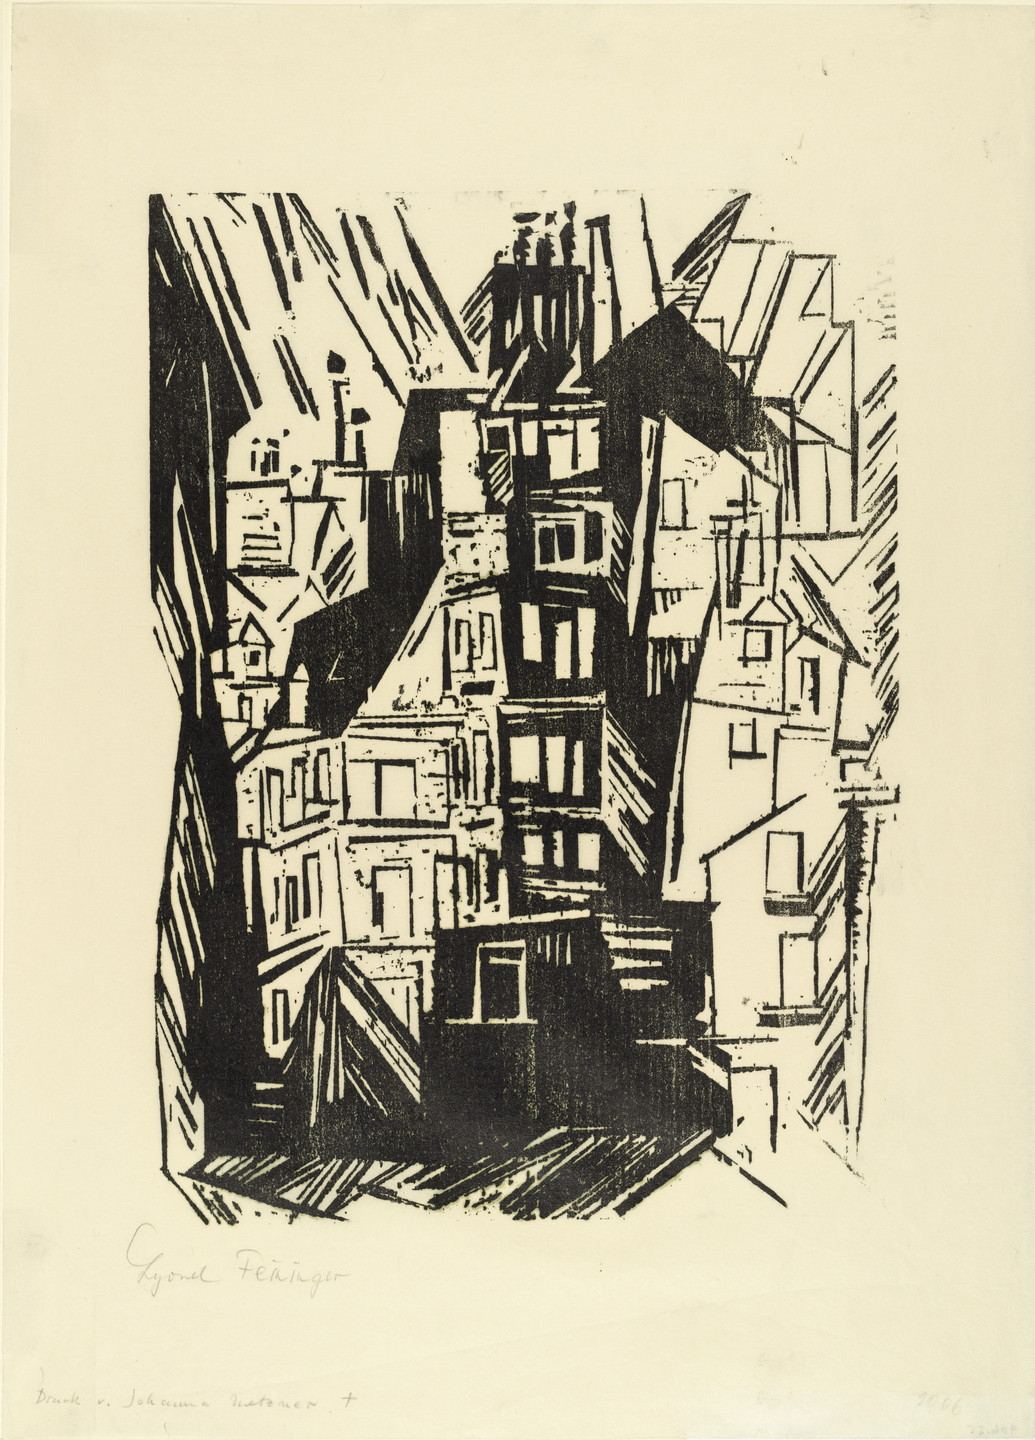 Lyonel Feininger. Paris Houses (Pariser Häuser) annual print for the Gesellschaft der Erfurter Museumsfreunde (Society for the Friends of the Erfurt Museum). 1920 (published 1927)